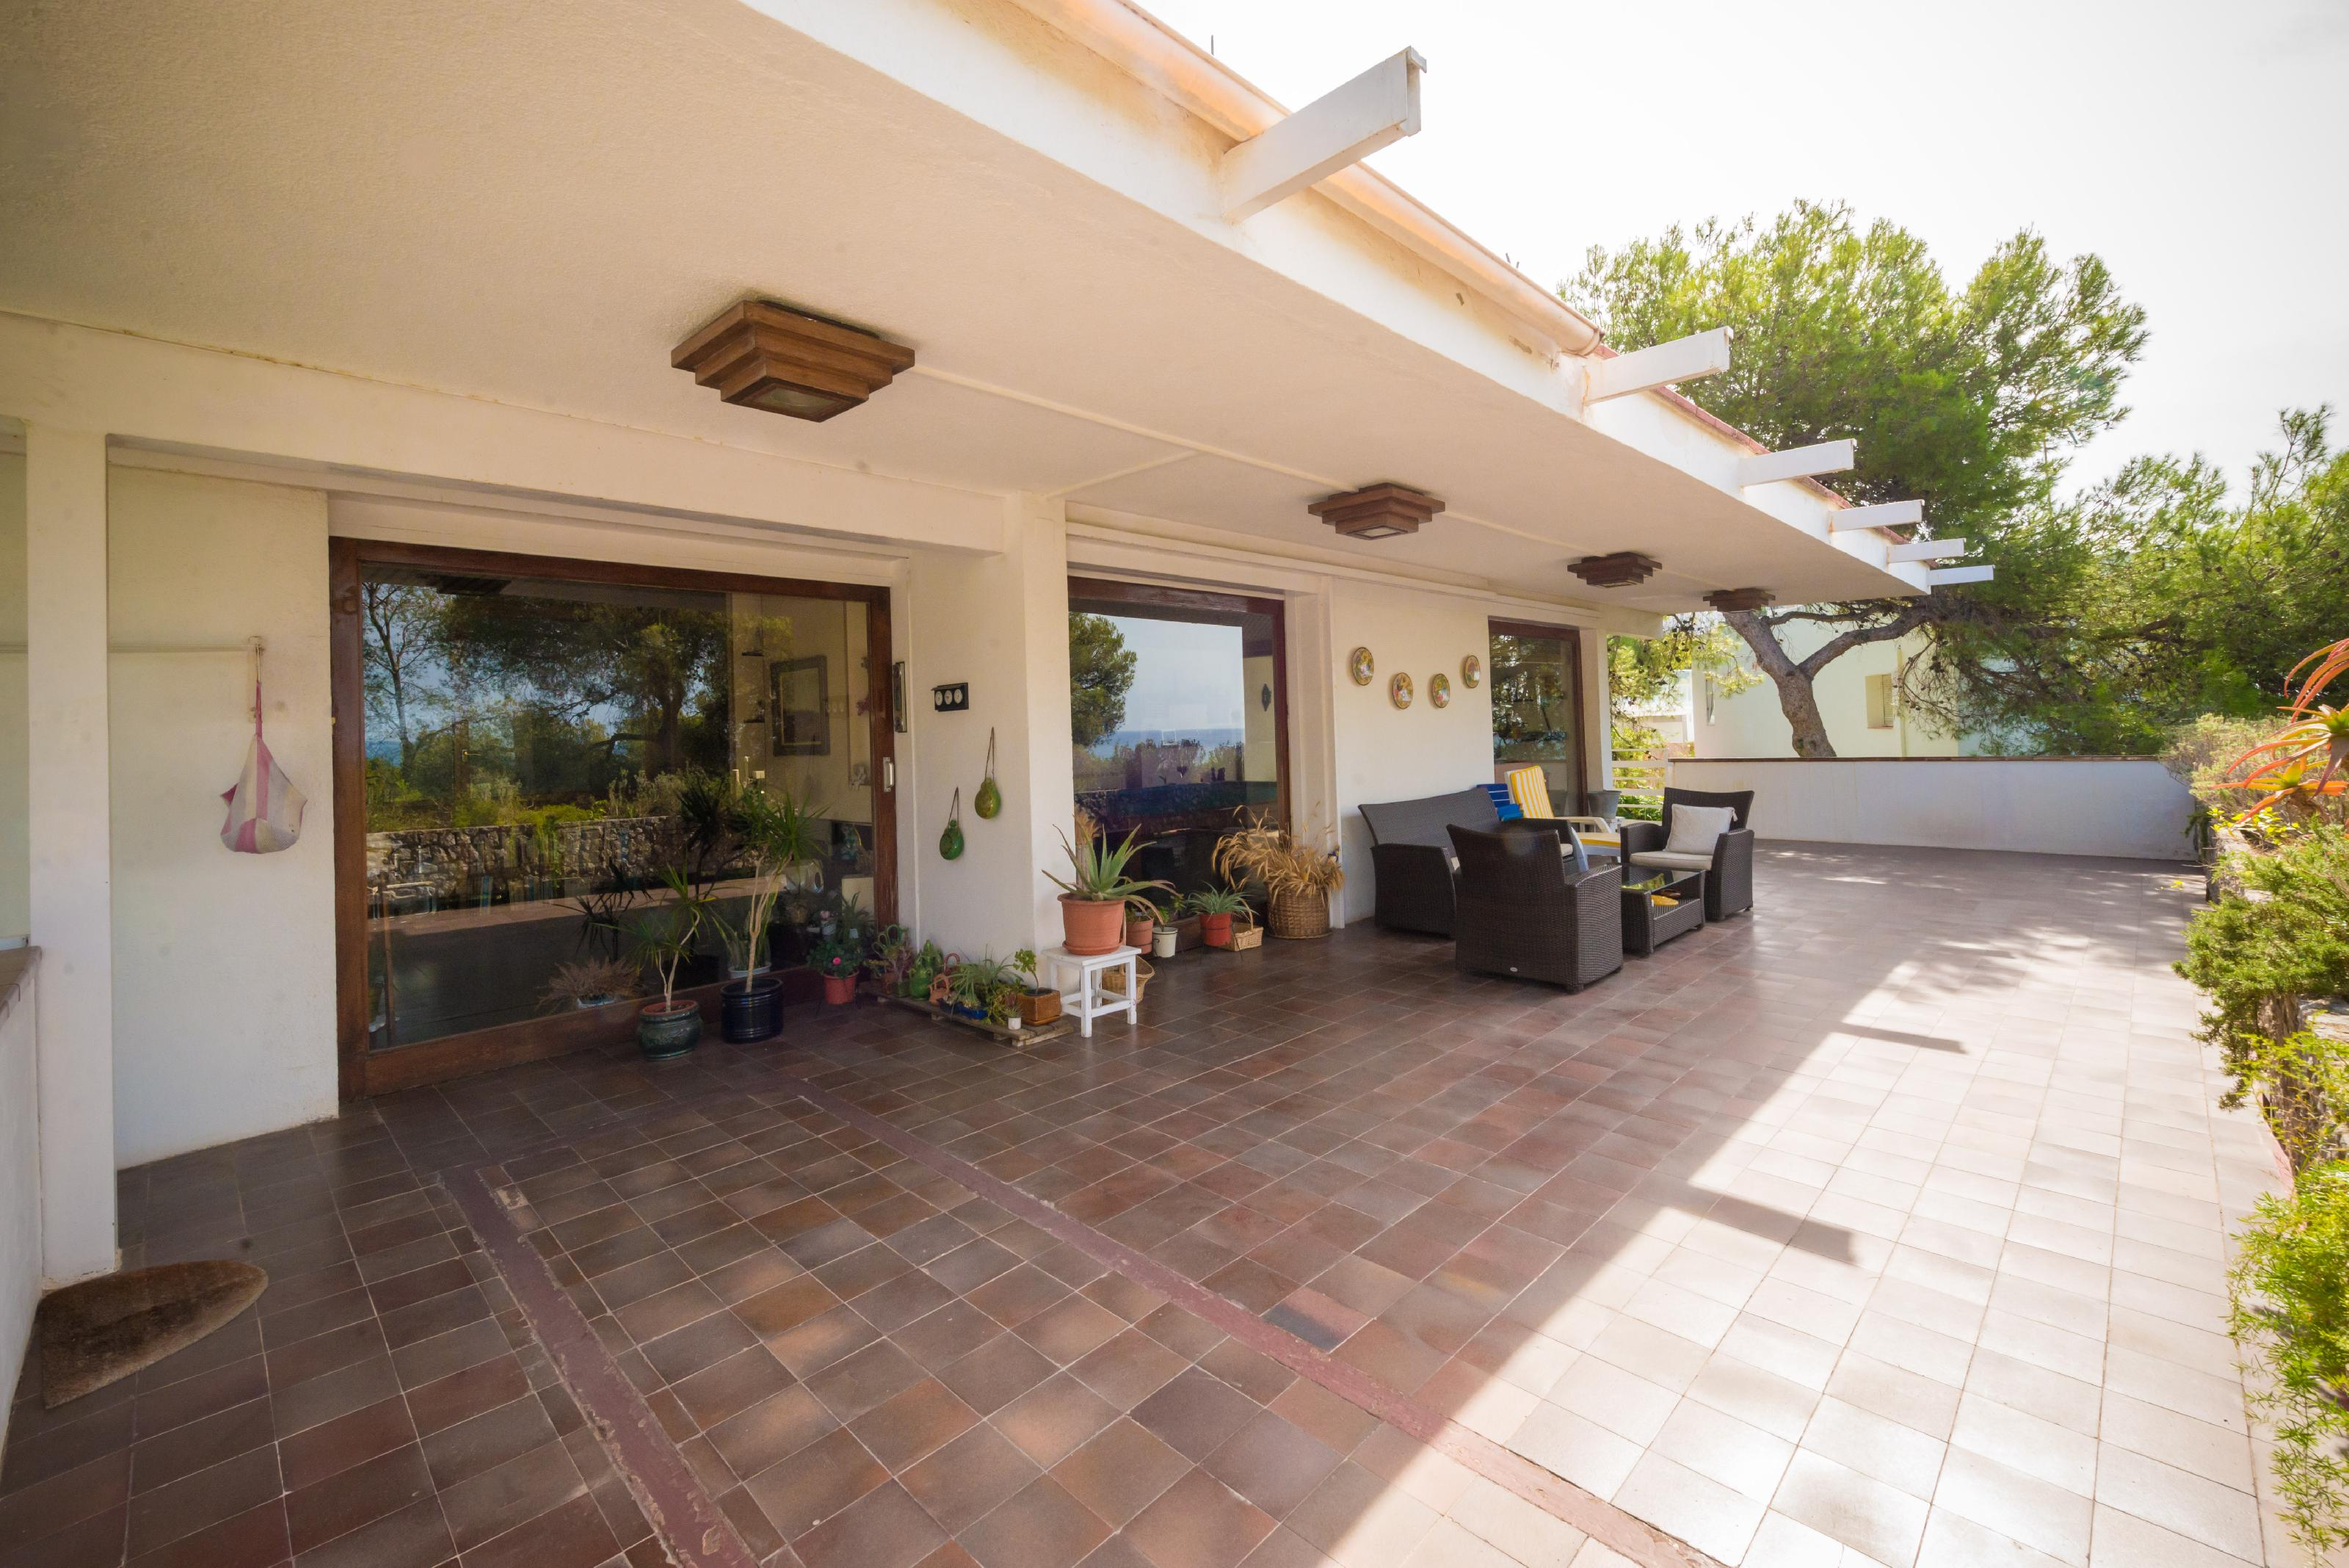 253501 Detached House for sale in Bellamar 4